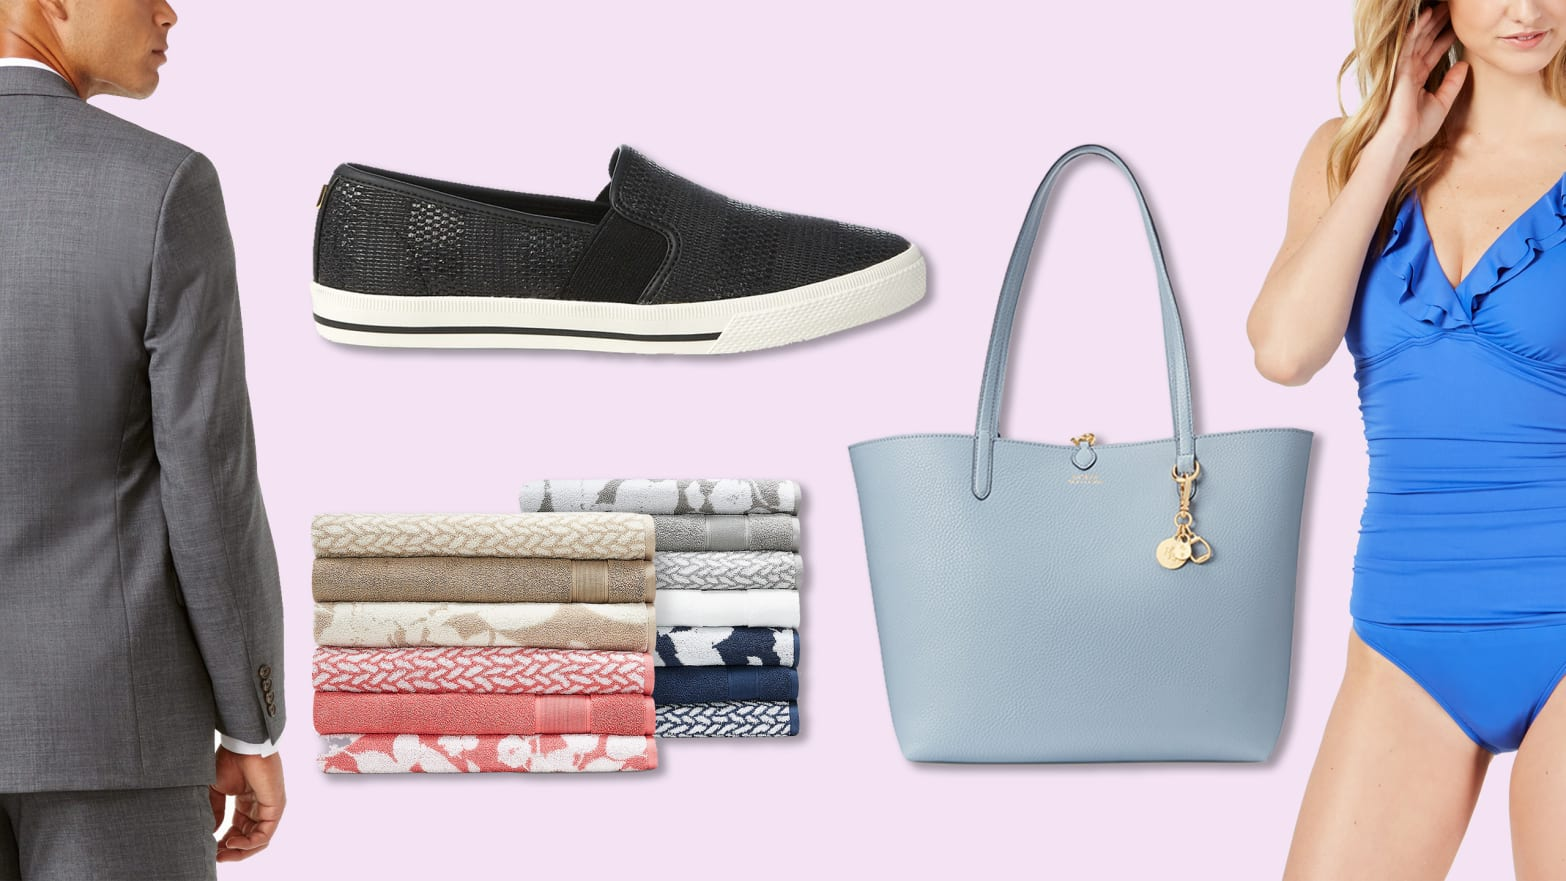 49d2348657 Save 25% on Ralph Lauren Bags, Sneakers, Suits, Bathing Suits, And More  During This Macy's Sale